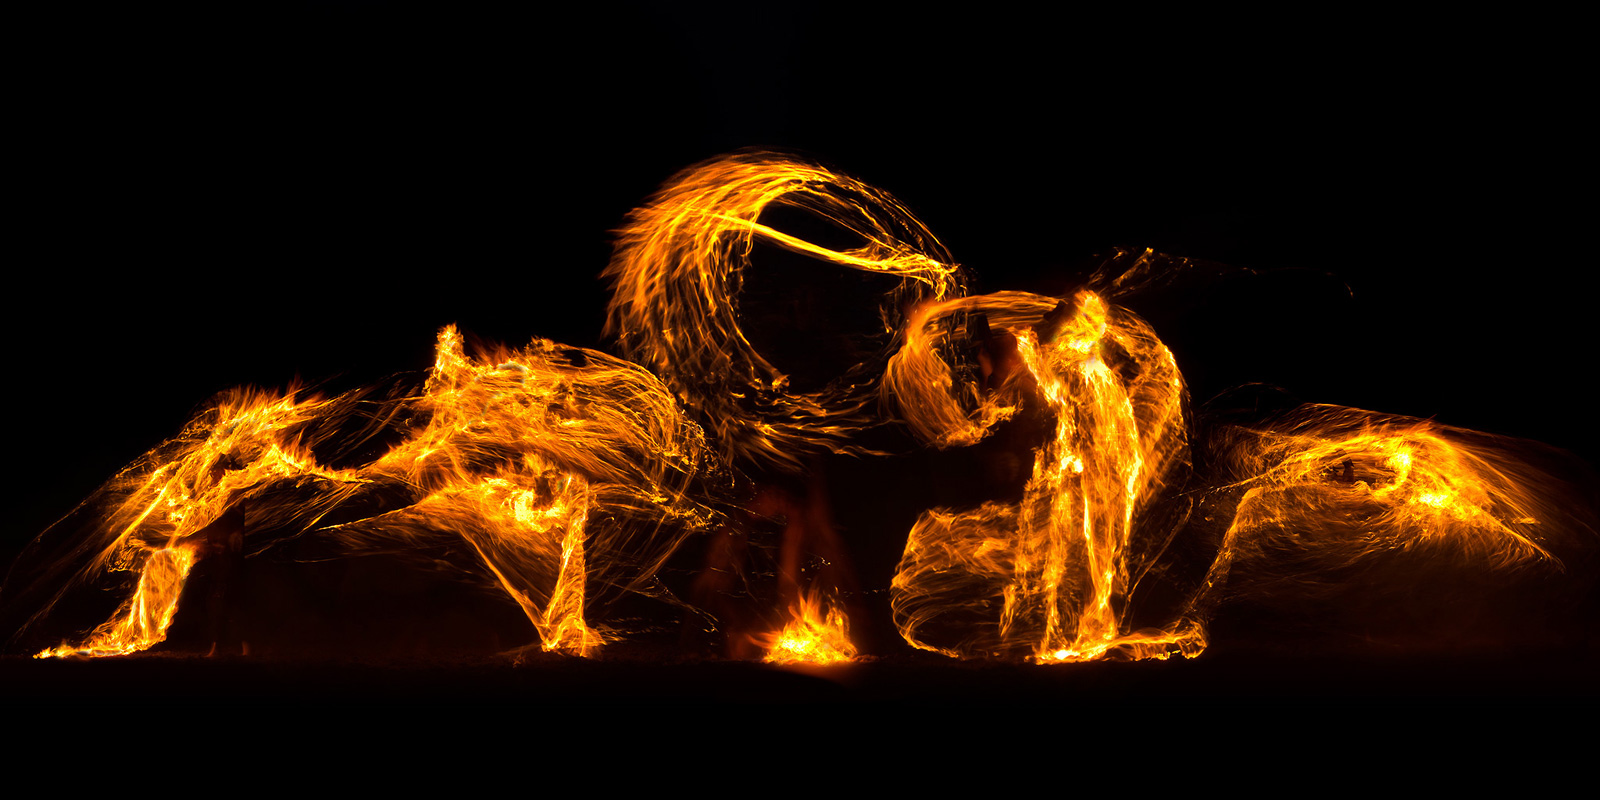 Lessons in Photographing Fire at Night